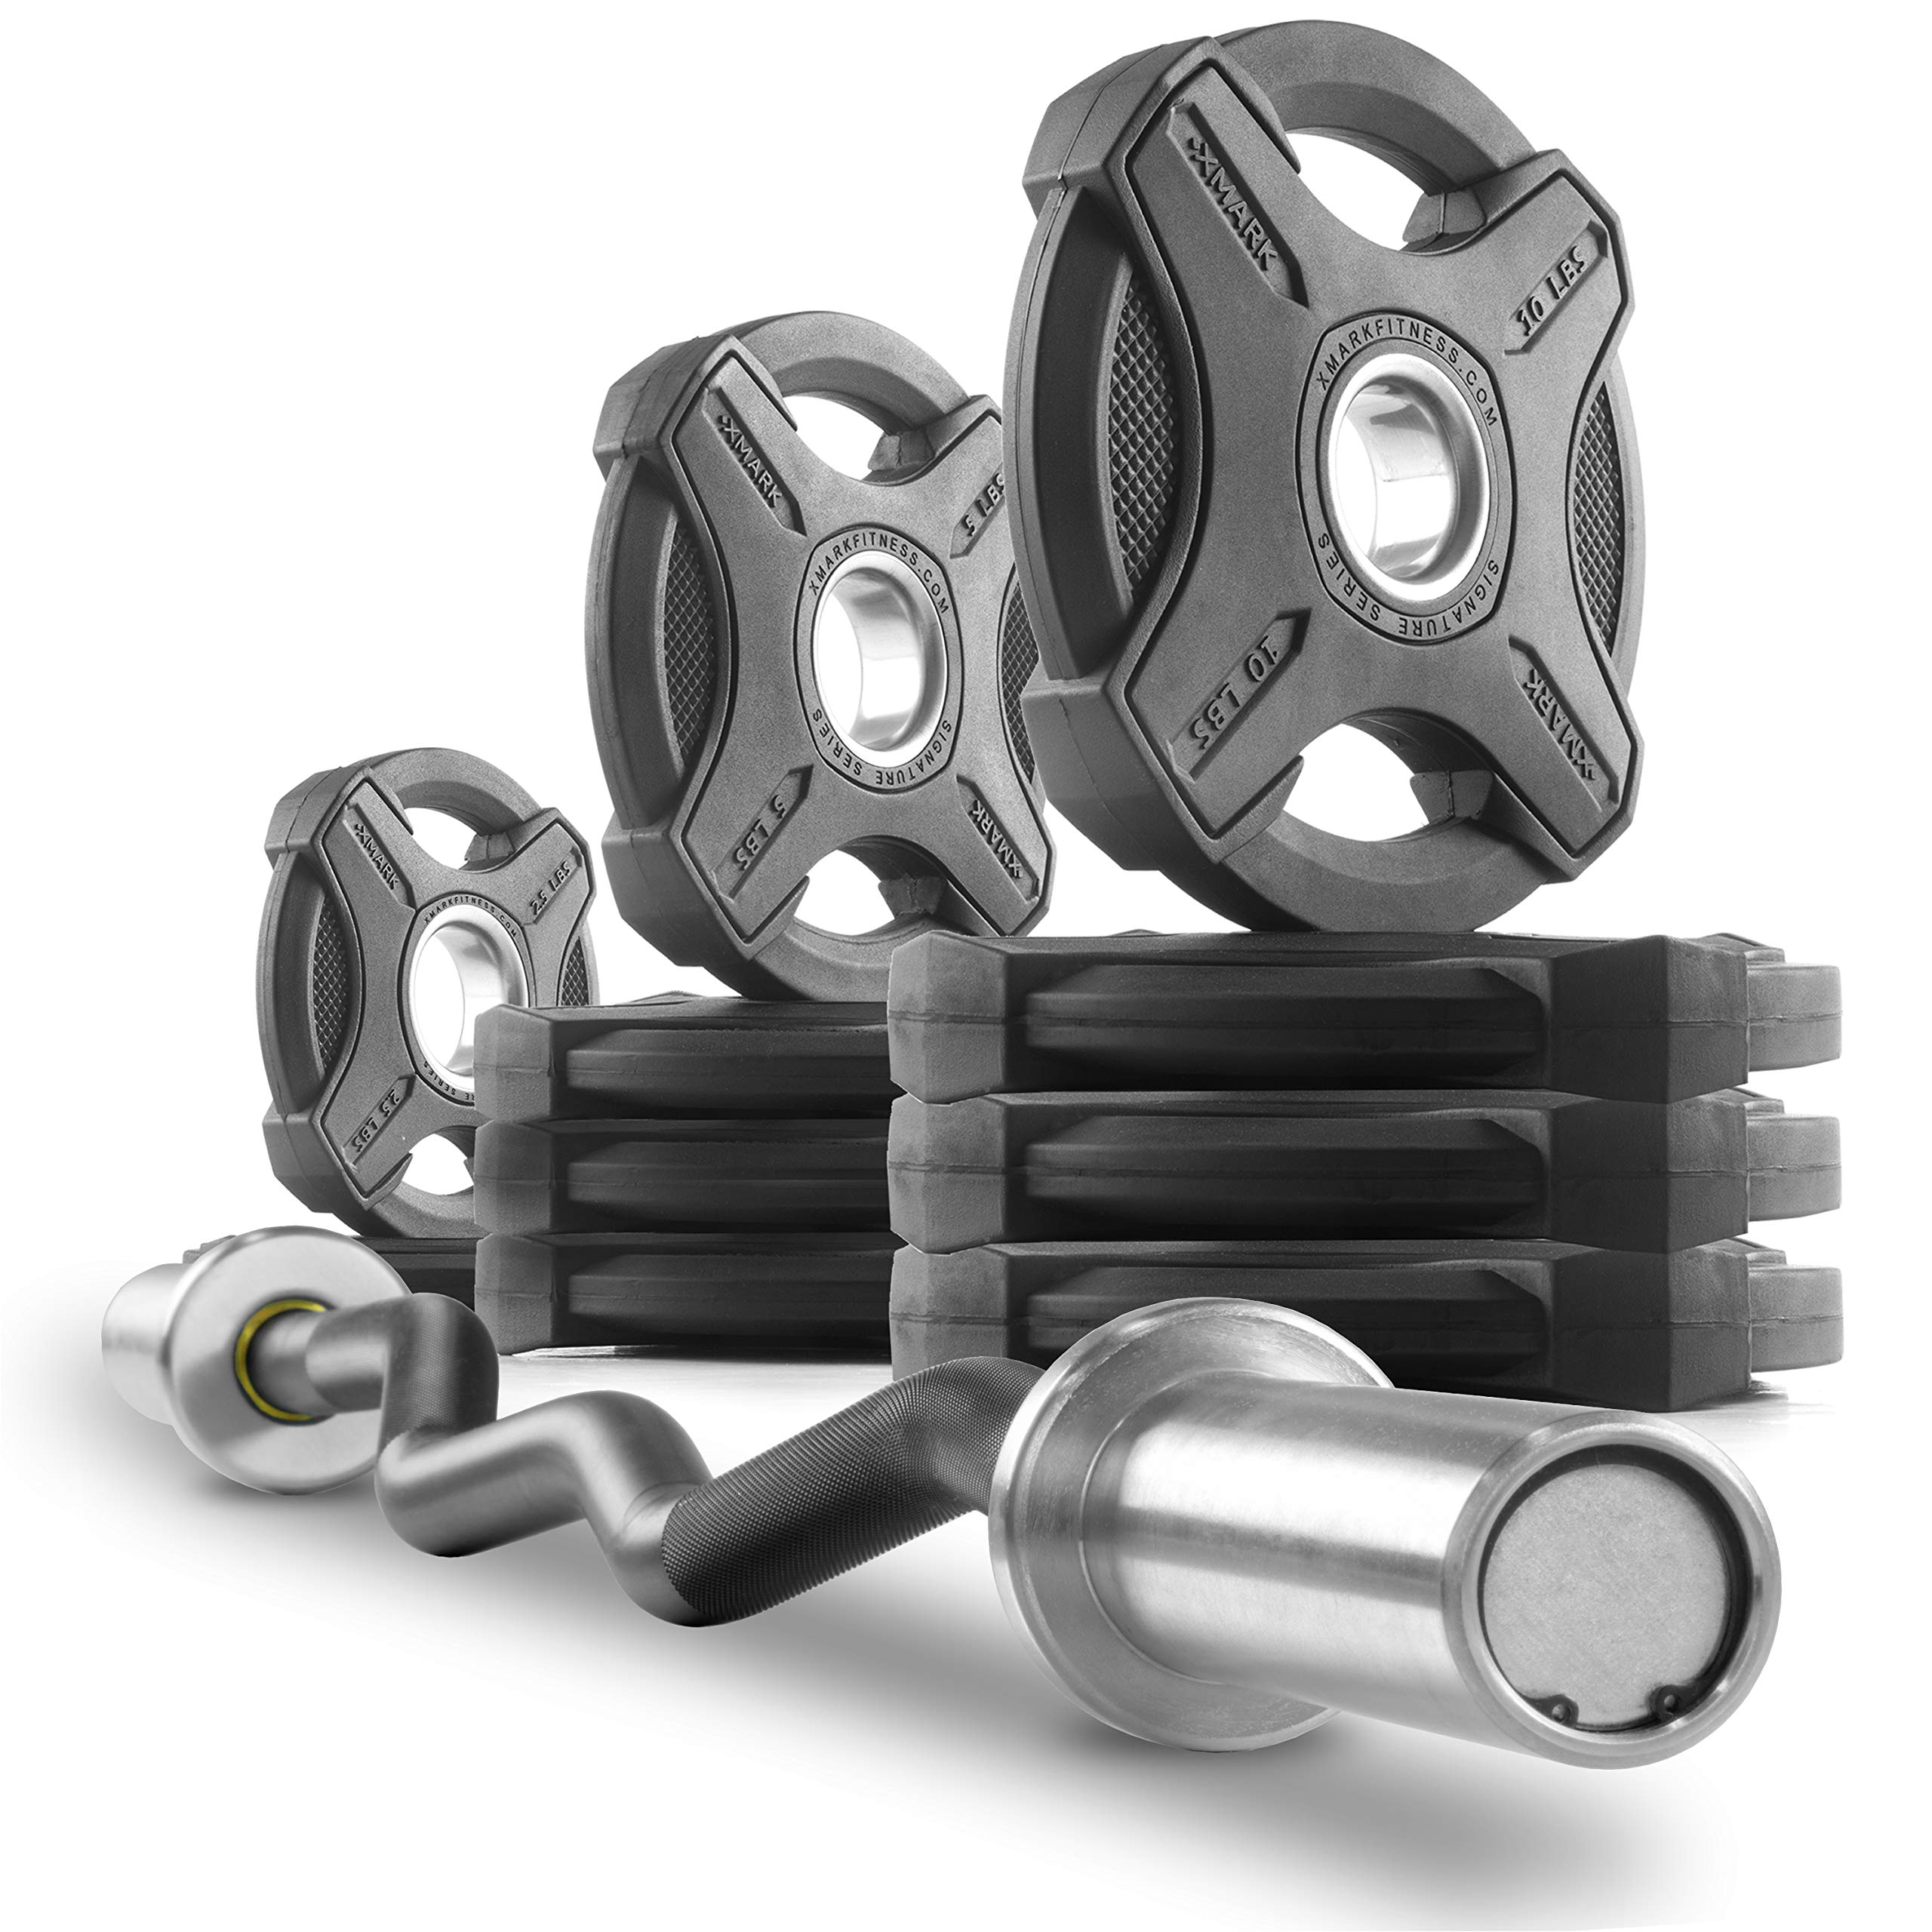 XMark Commercial Hard Chrome Olympic EZ Curl Bar Brass Bushings with Signature 65 lb. Olympic Plate Weight Sets, Great for Bicep Curl and Triceps Extension